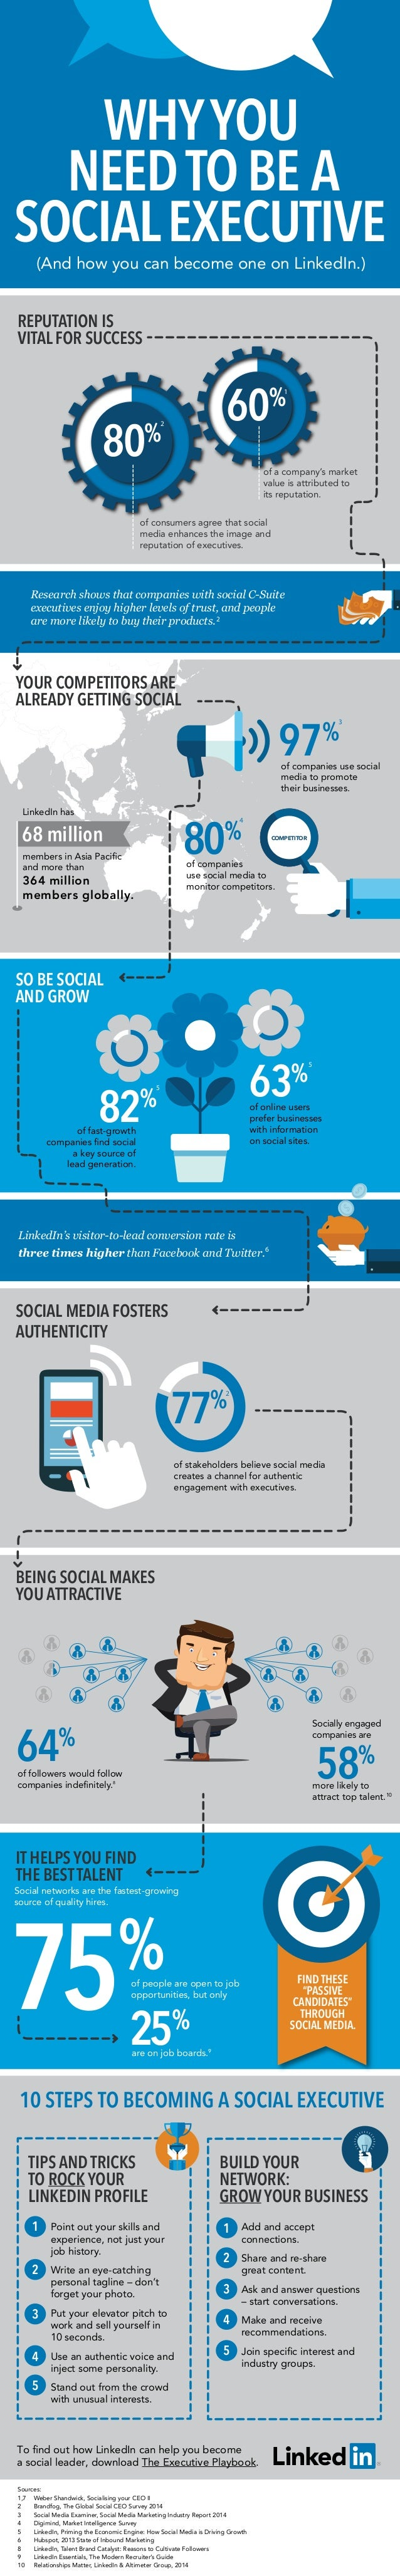 of followers would follow companies indefinitely.8 more likely to attract top talent.10 Socially engaged companies are of f...